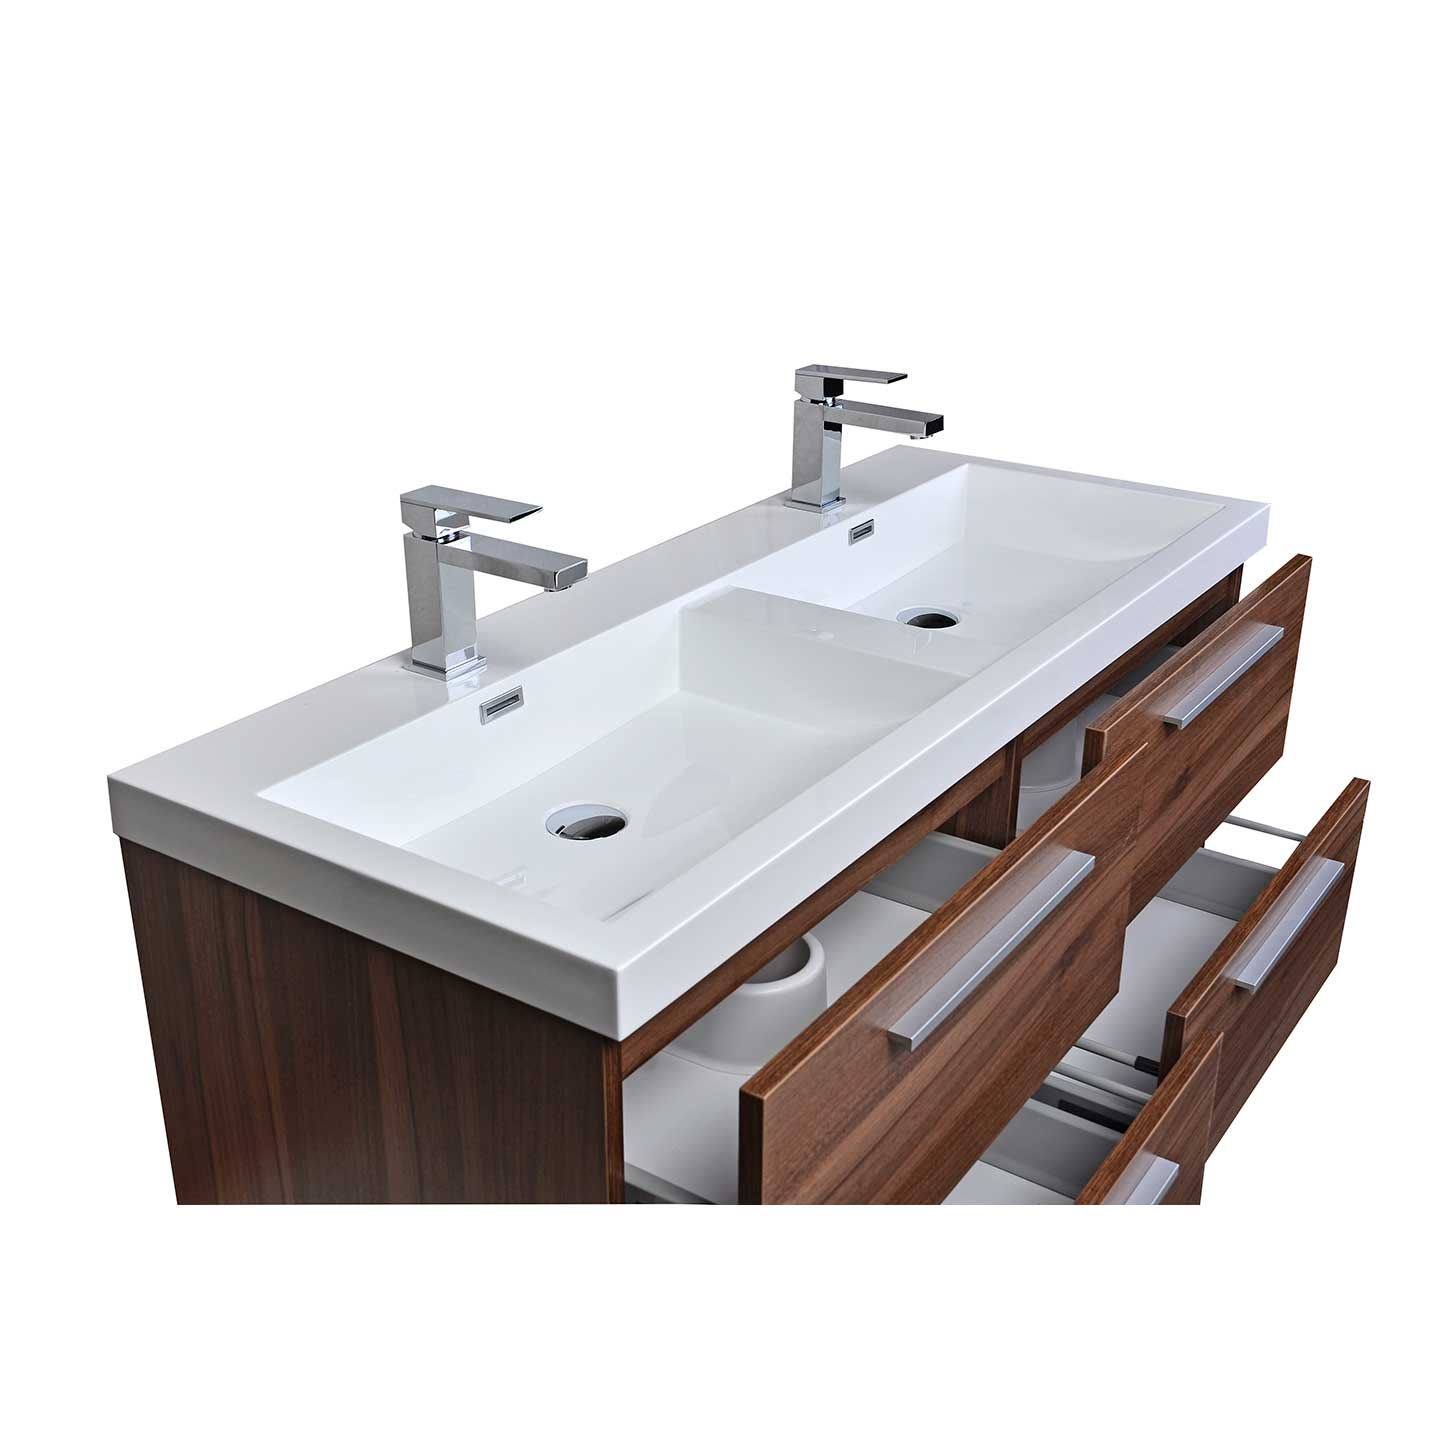 buy 47 inch wall mounted modern double bathroom vanity in walnut tnt1200dwn on